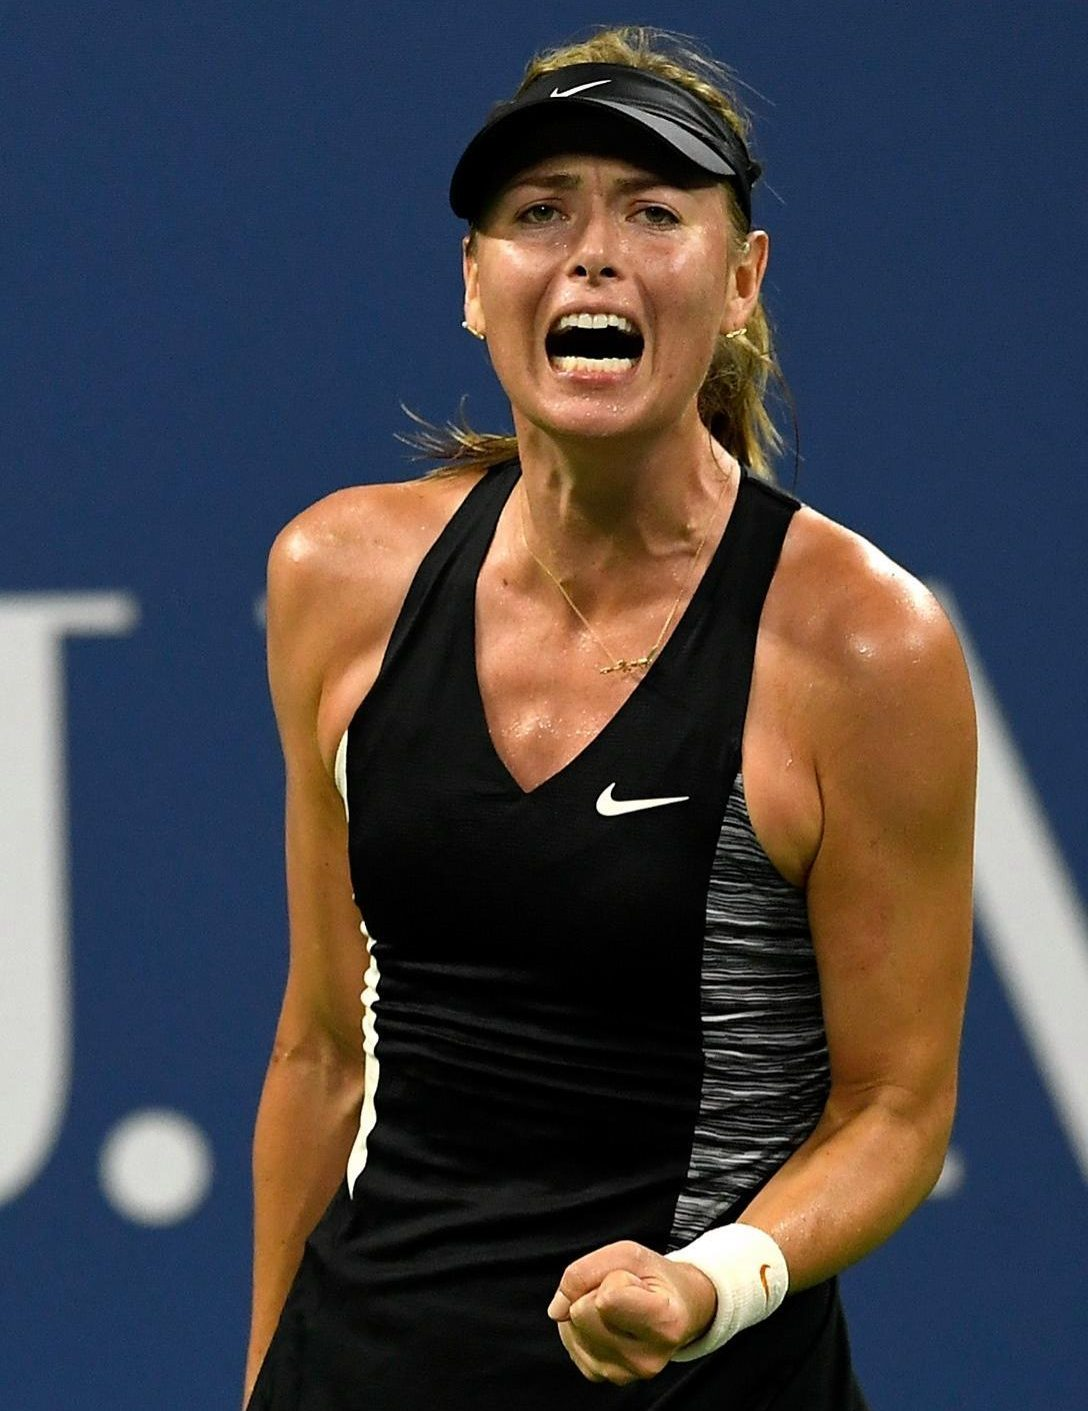 Russian beauty Maria Sharapova celebrates victory at Flushing Meadow